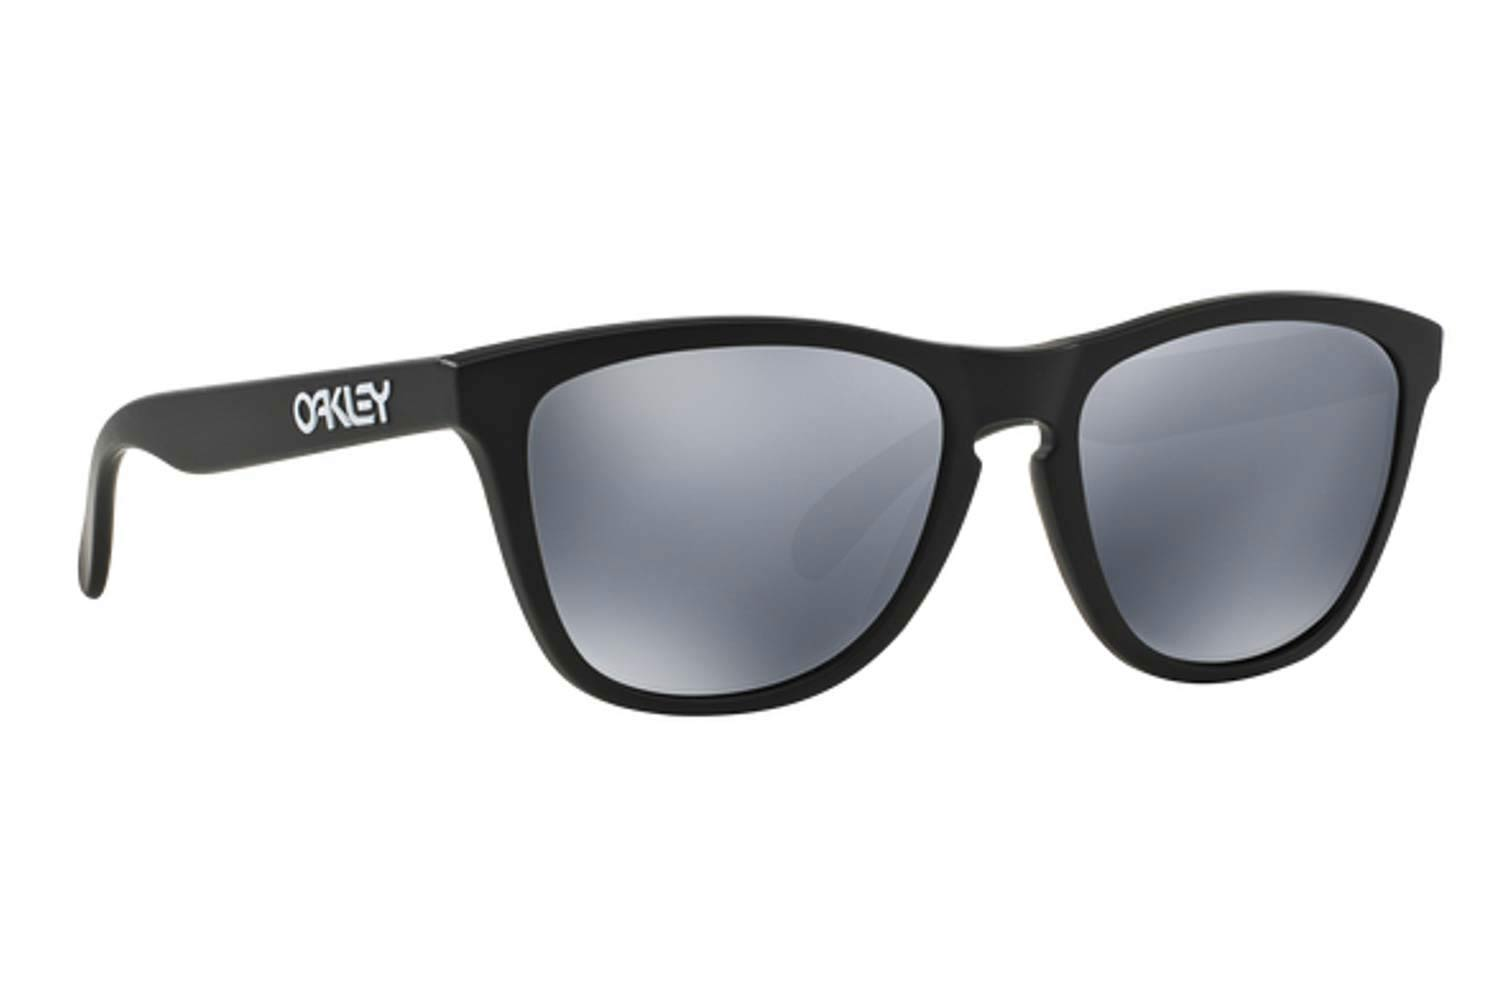 Γυαλιά Oakley Frogskins 9013 24-297 Black iridium polarized